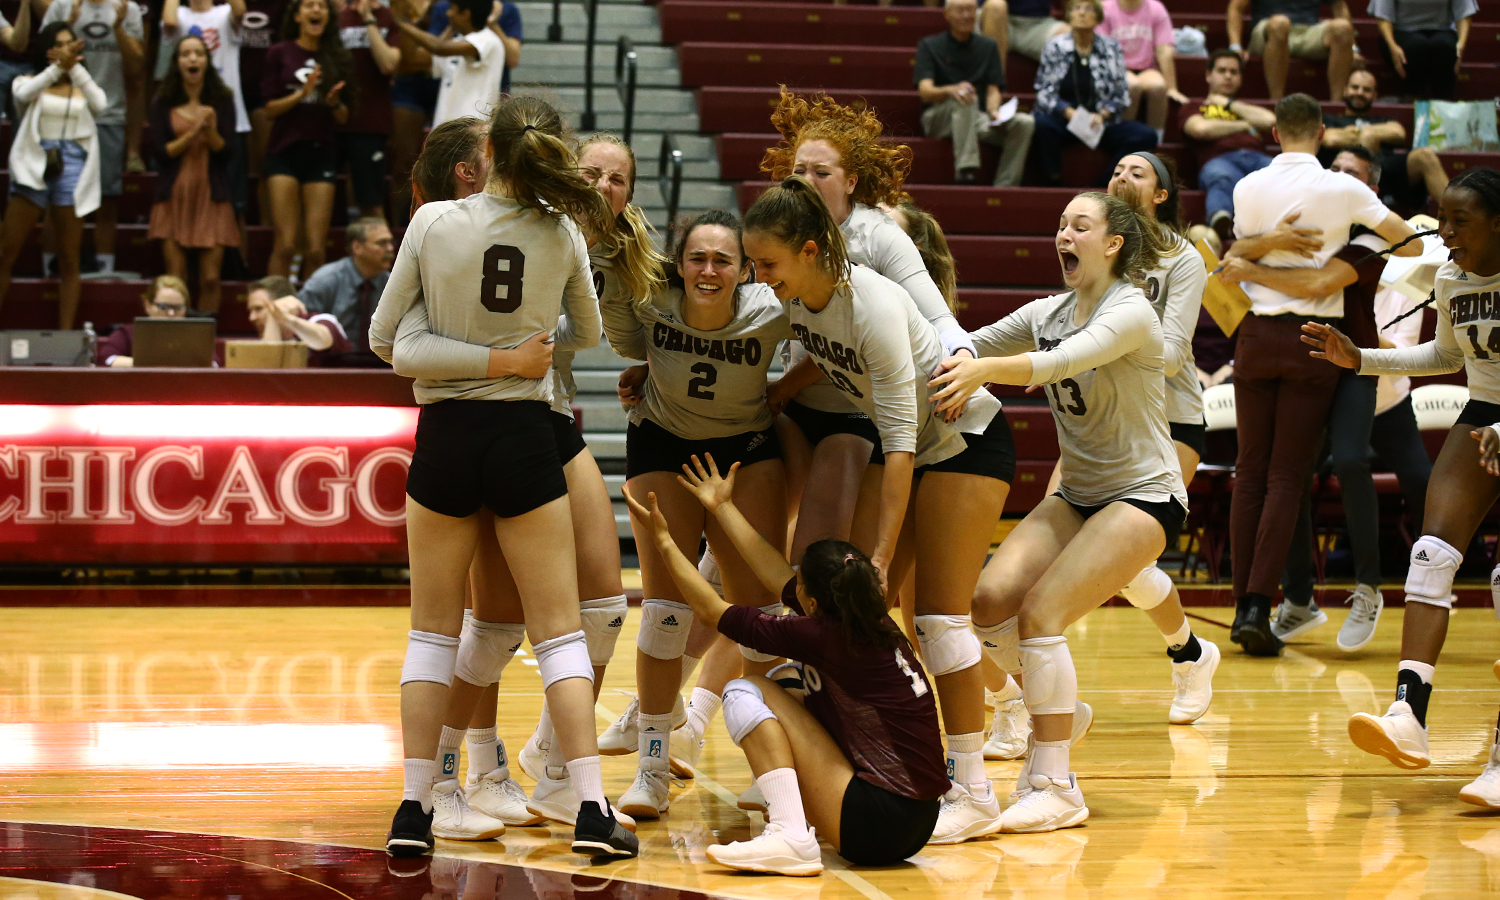 DOWN GOES #1! UChicago Volleyball Tops Top-Ranked Calvin, 3-1